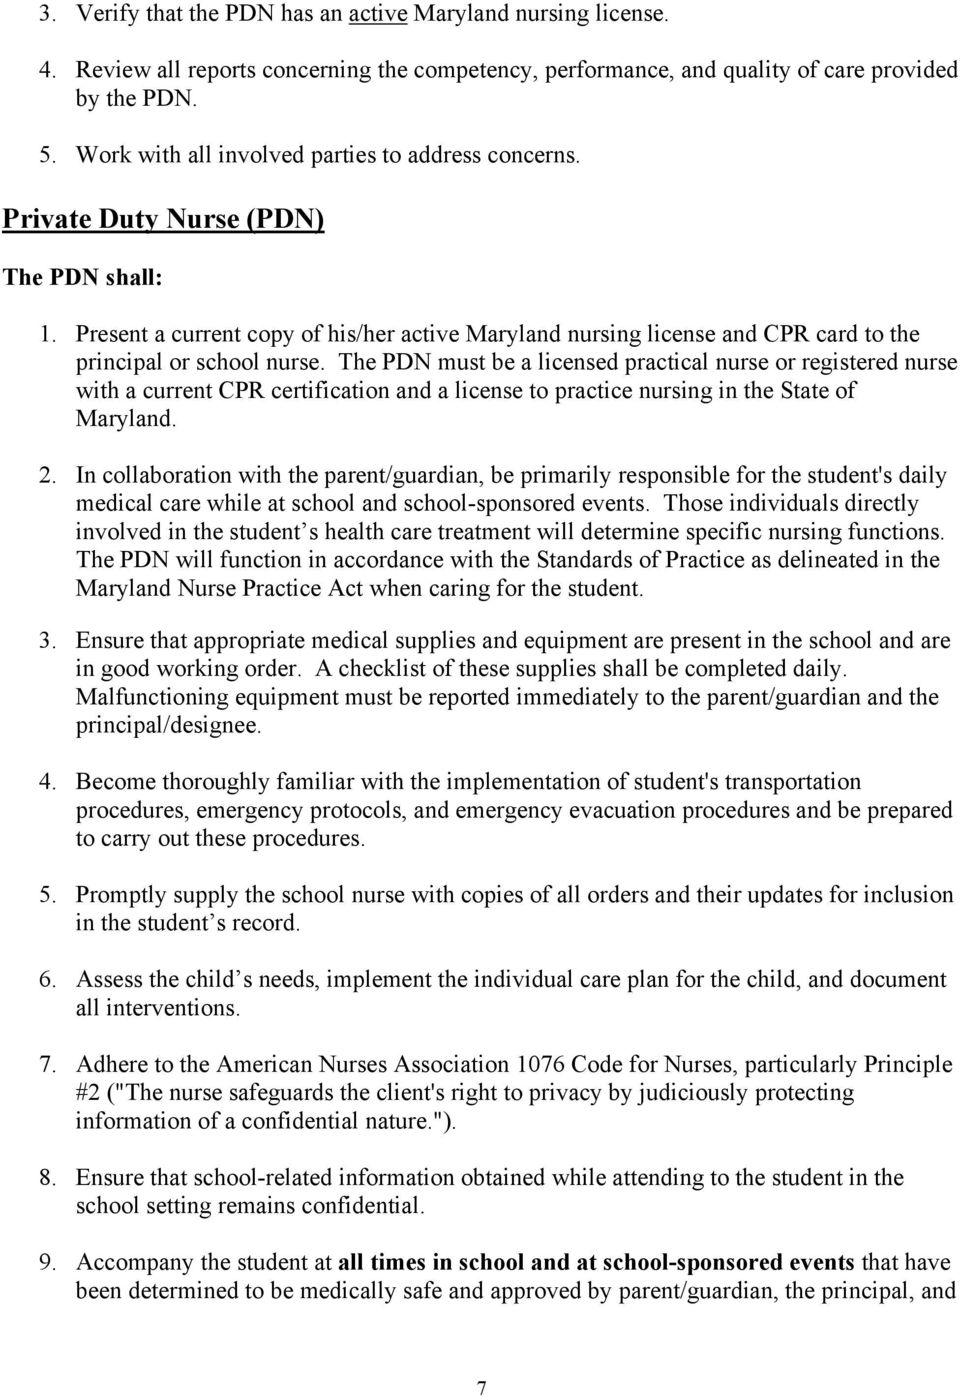 Maryland State School Health Services Guidelines Model Policy For